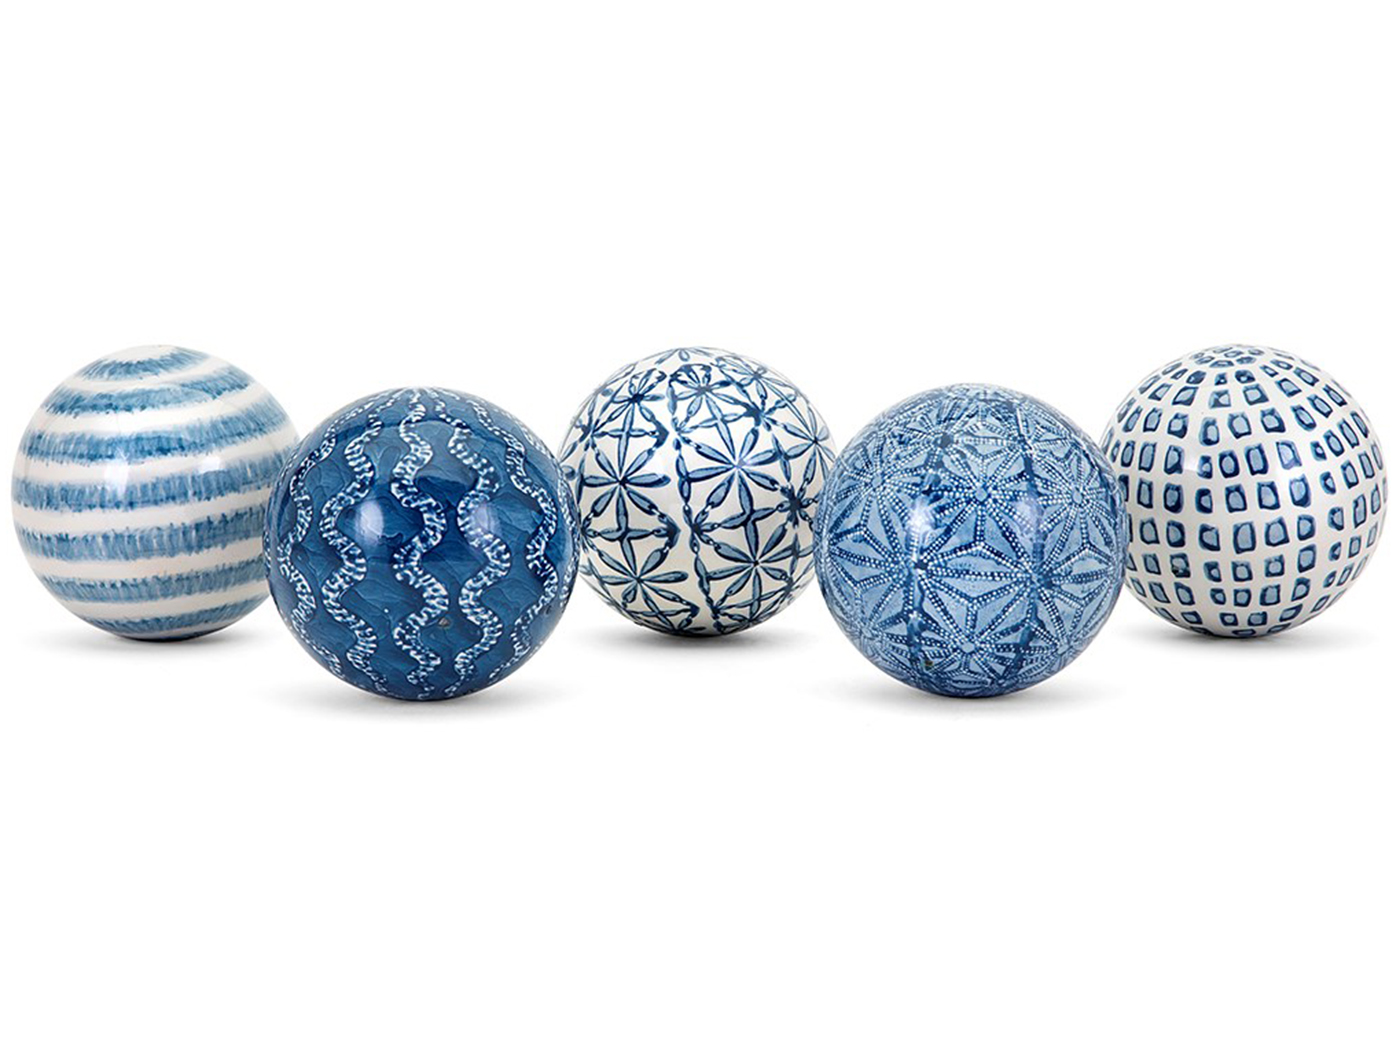 Assorted Blue and White Ceramic Deco Balls 4.25""